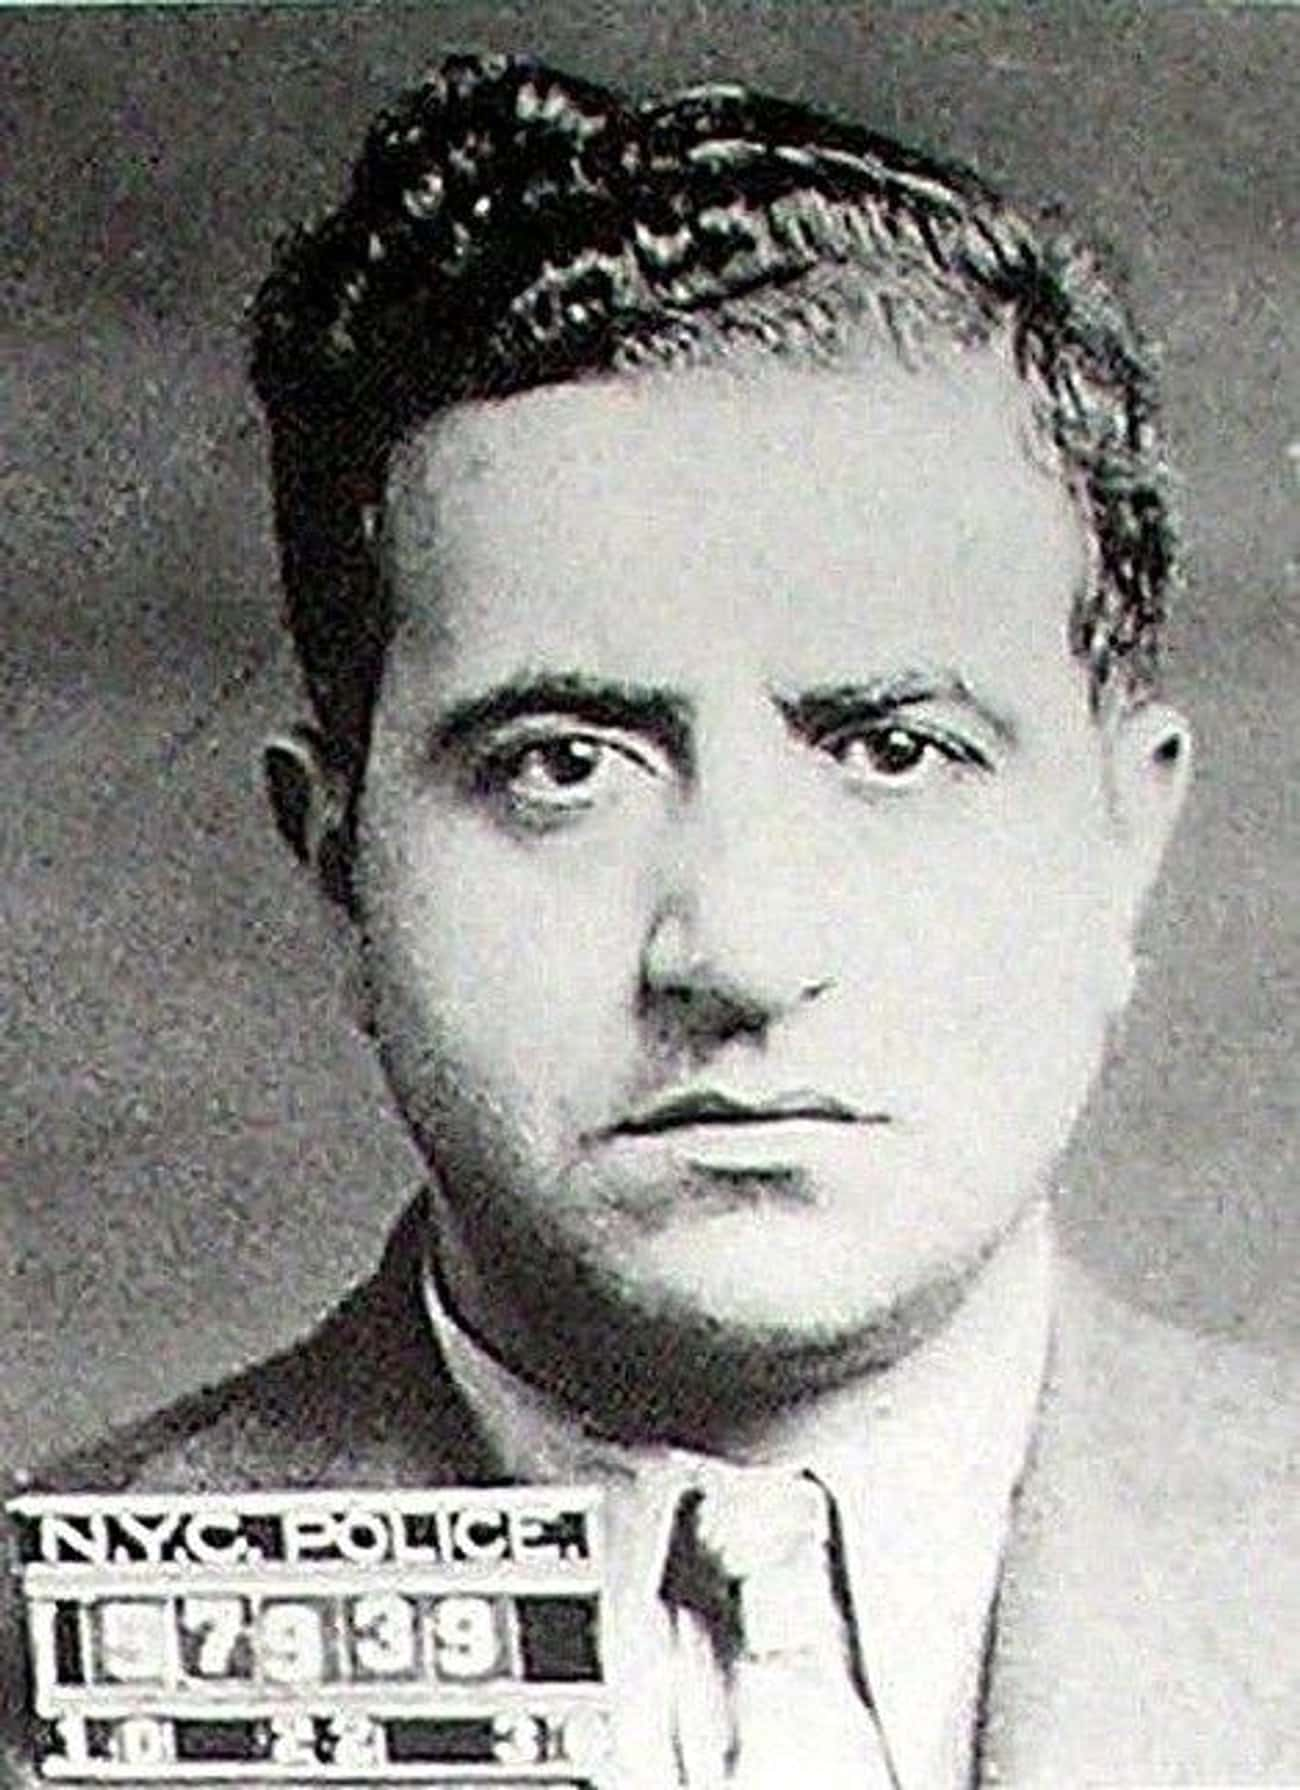 Albert Anastasia Just Wanted A is listed (or ranked) 3 on the list Mob Hits You Shouldn't Google